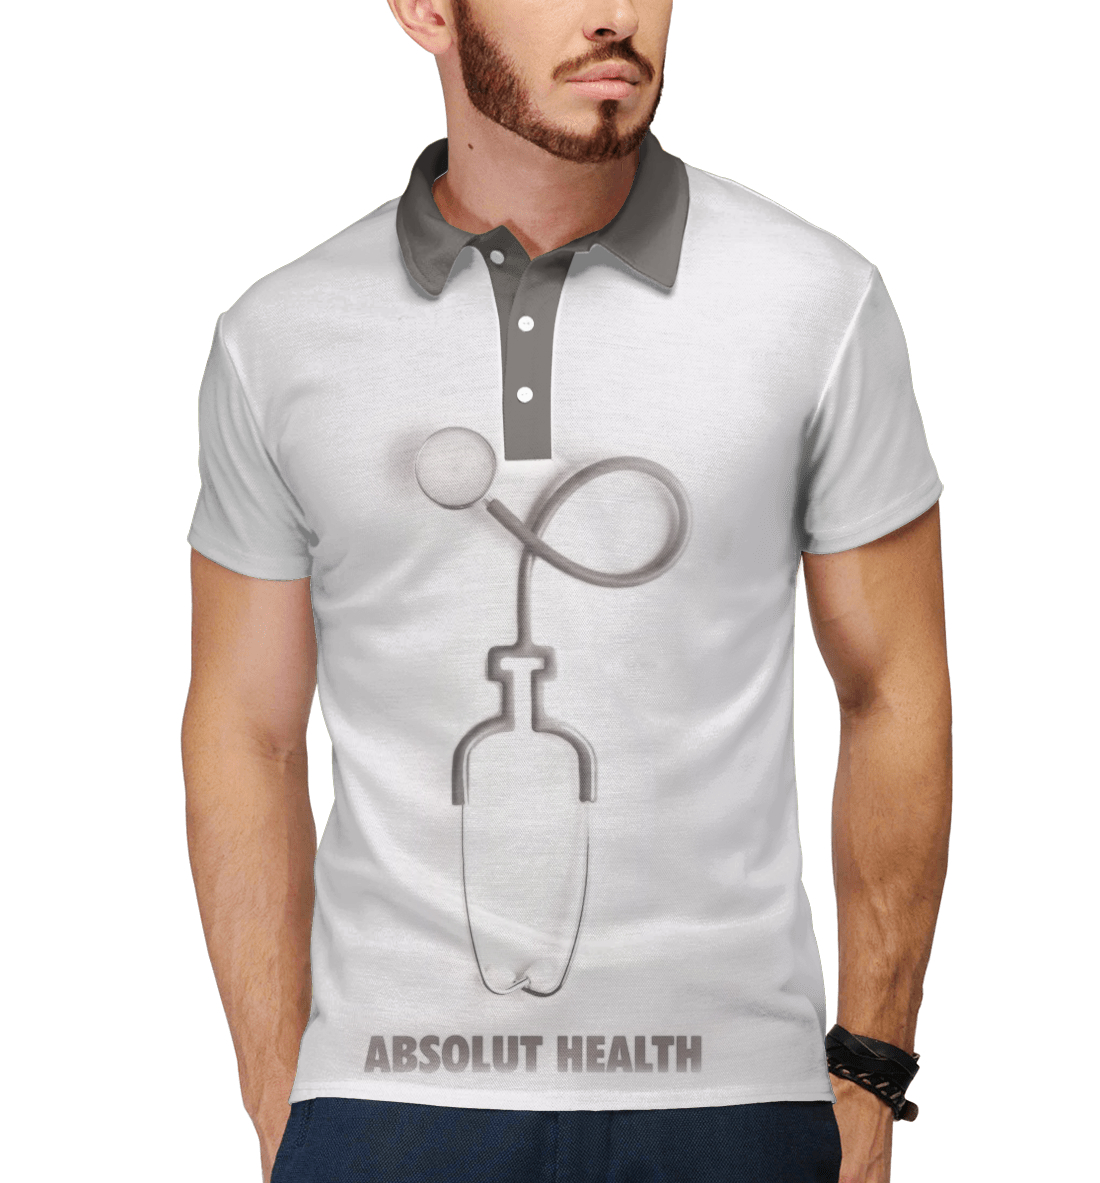 Absolut health